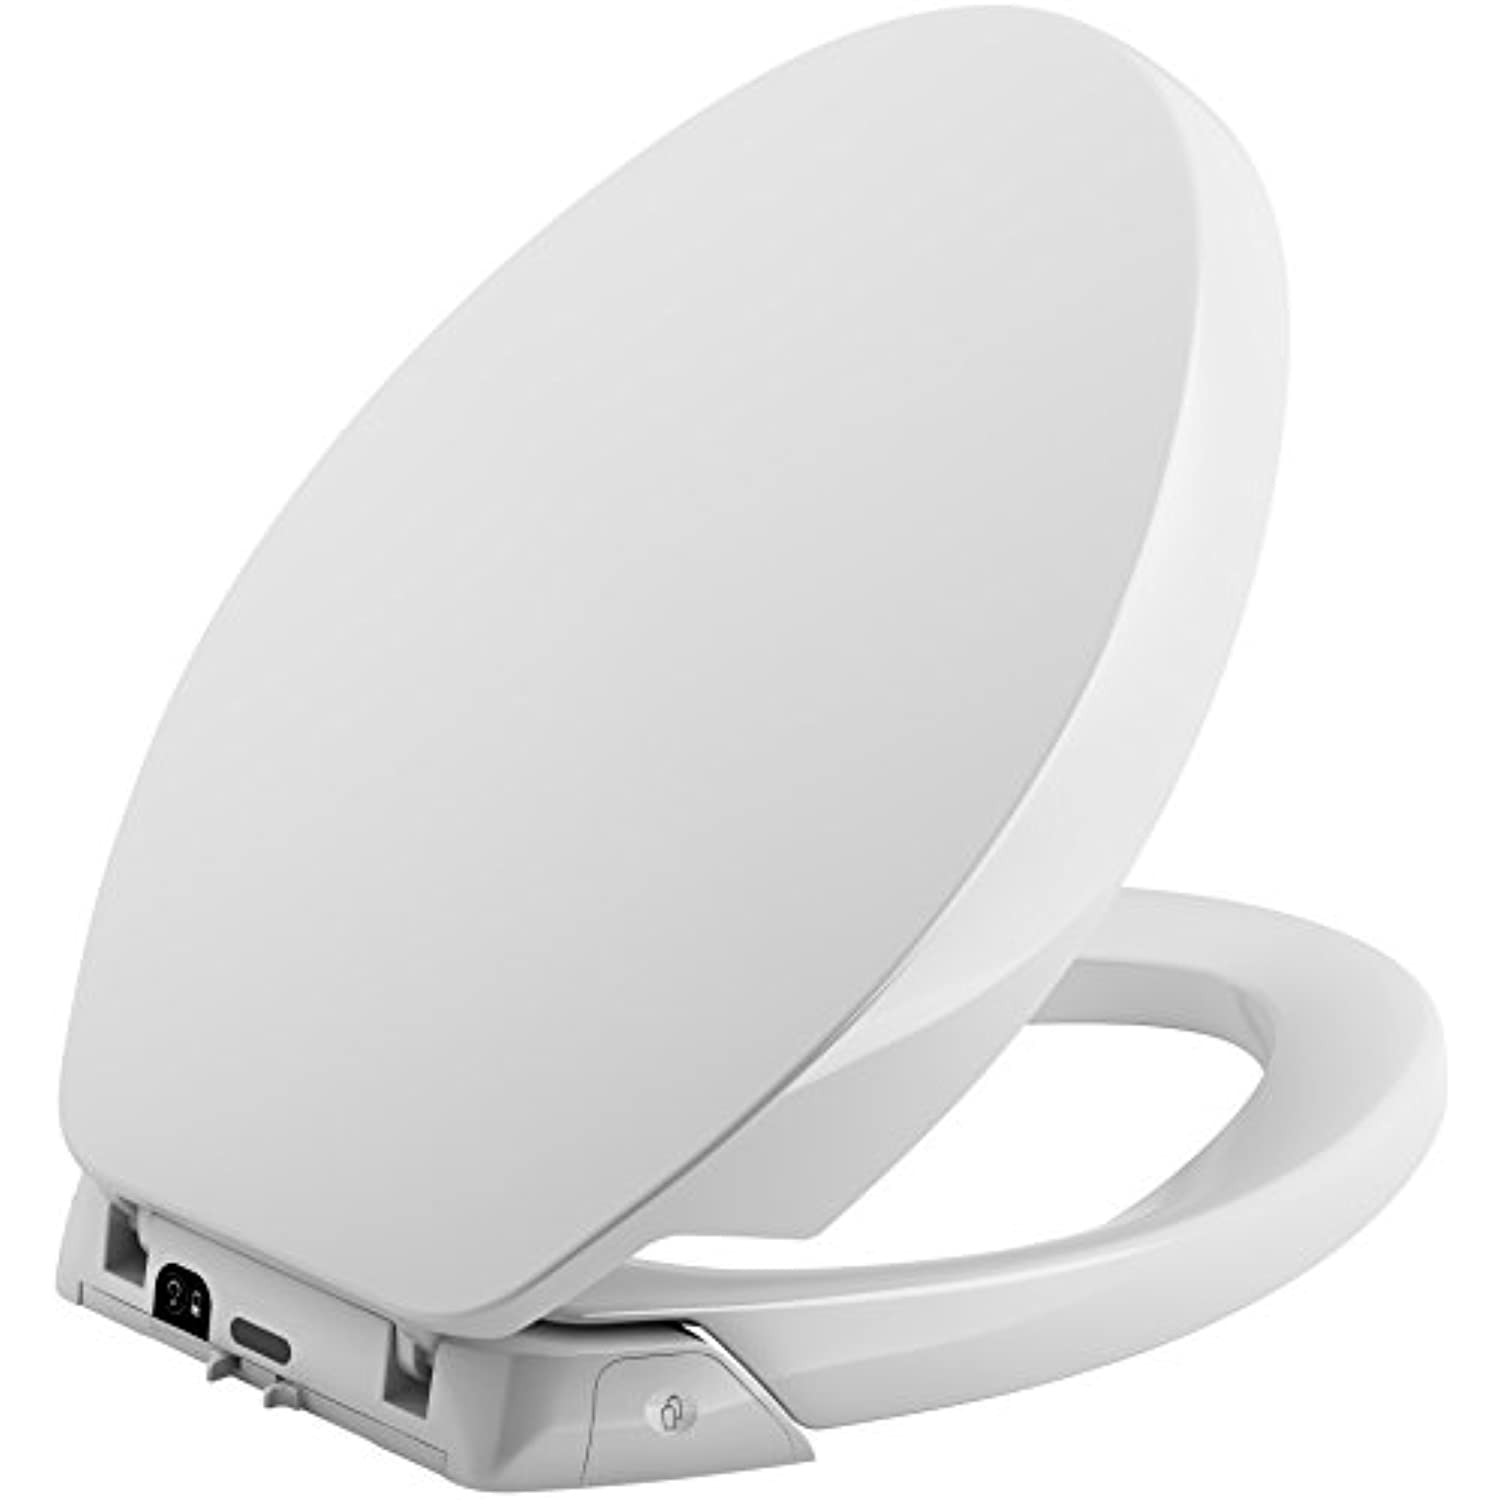 KOHLER K-5588-0 Purefresh Quiet-Close with Grip-Tight Bumpers Elongated Toilet Seat, White,2.50 x 14.10 x 19.17 inches